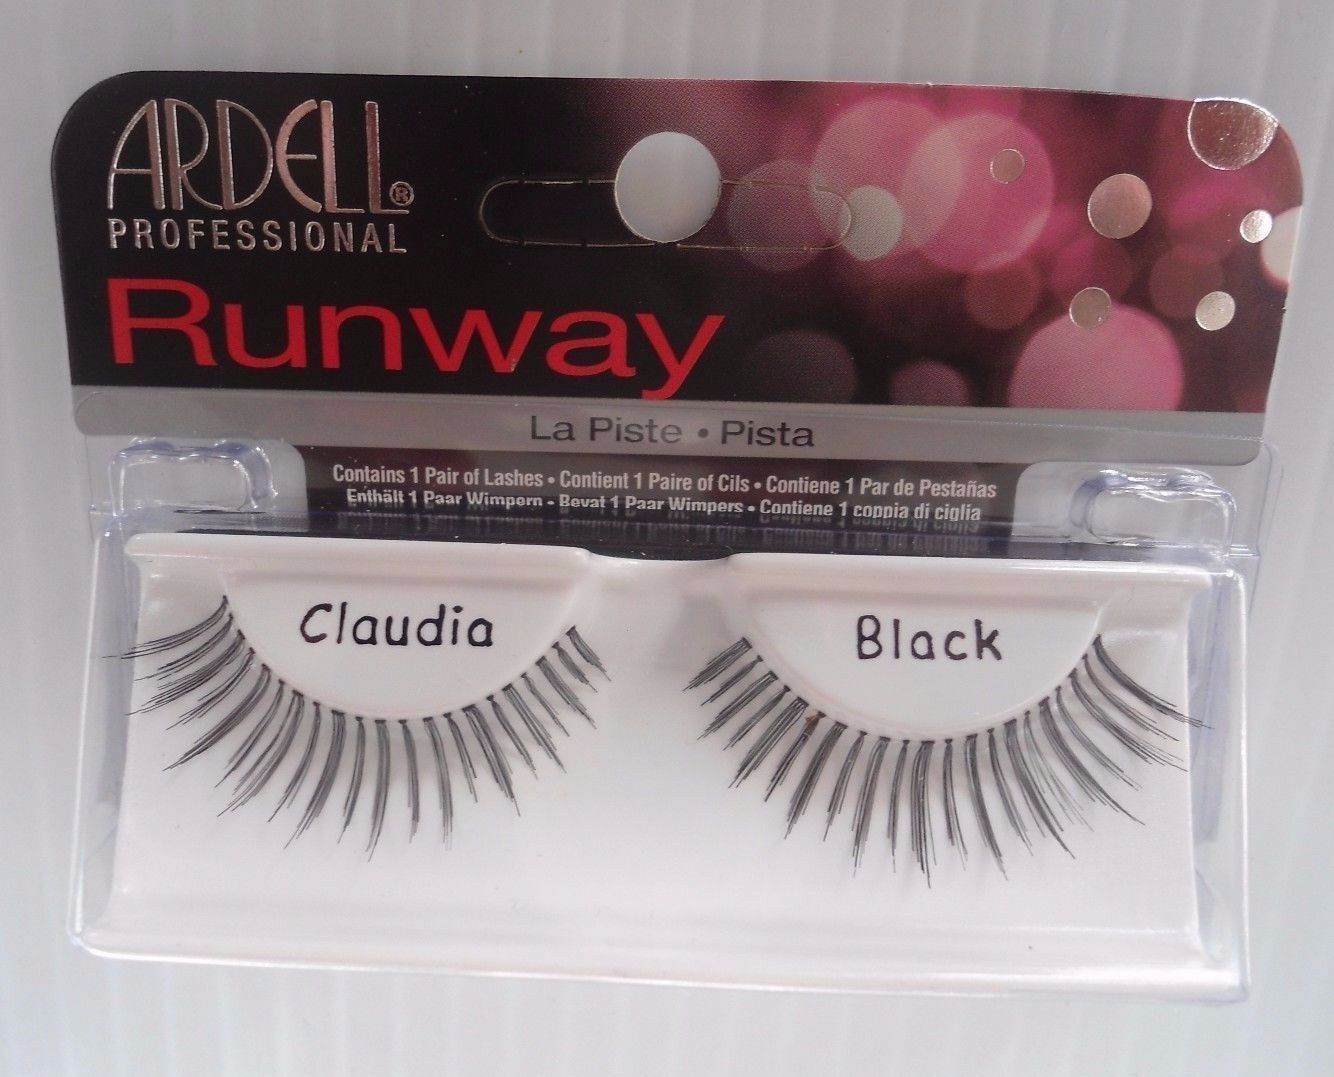 Primary image for Ardell Runway Strip Lashes Claudia Black (Pack of 2)